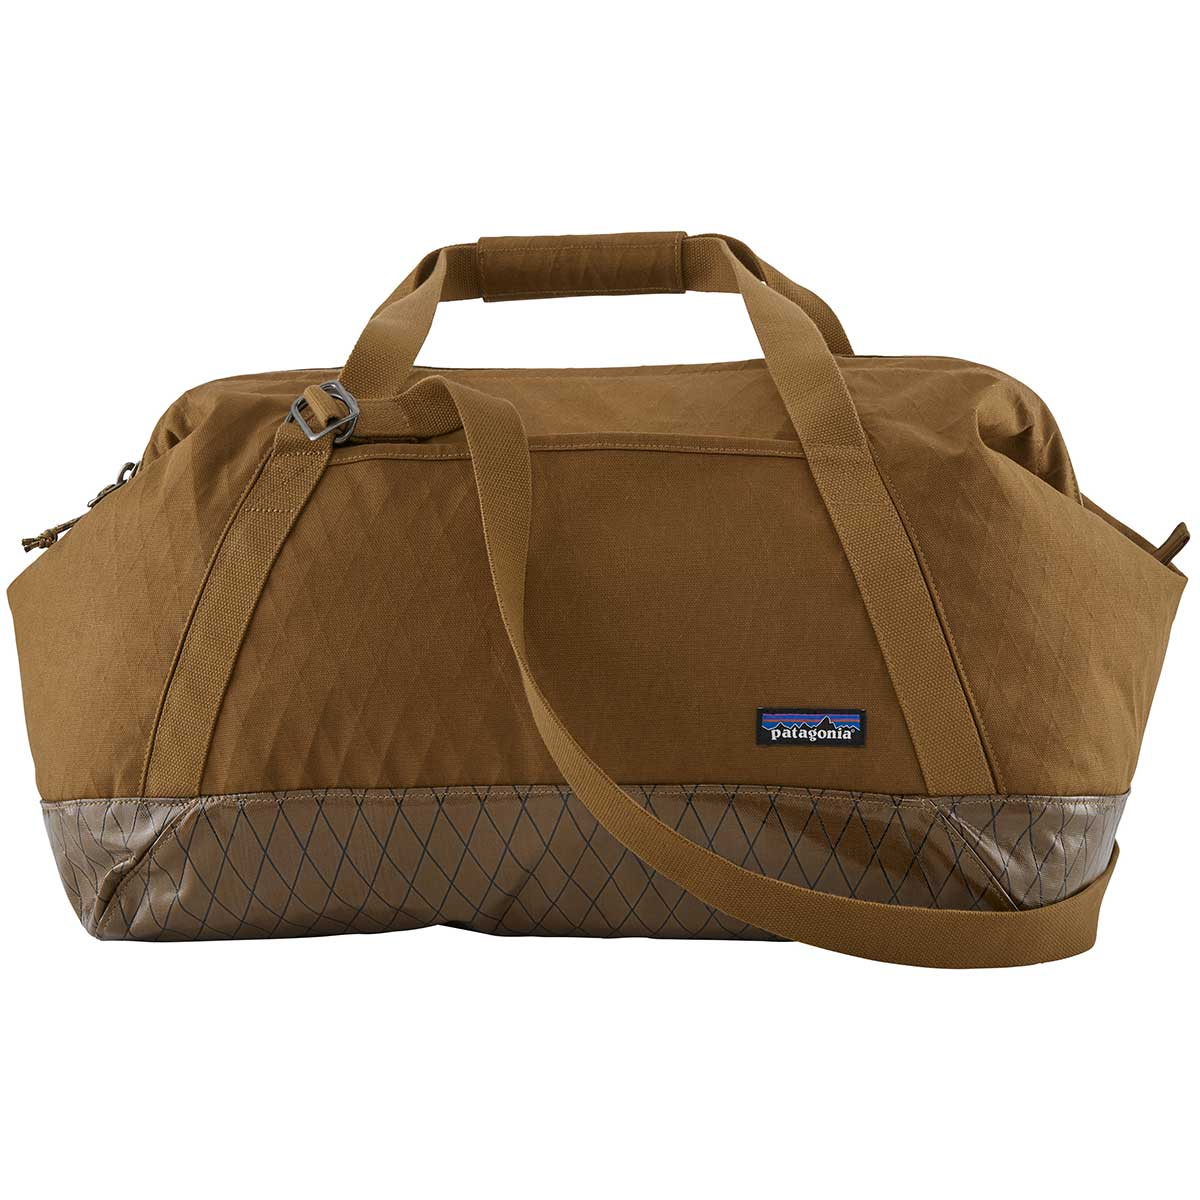 Patagonia Stand Up Duffel in Coriander Brown main view